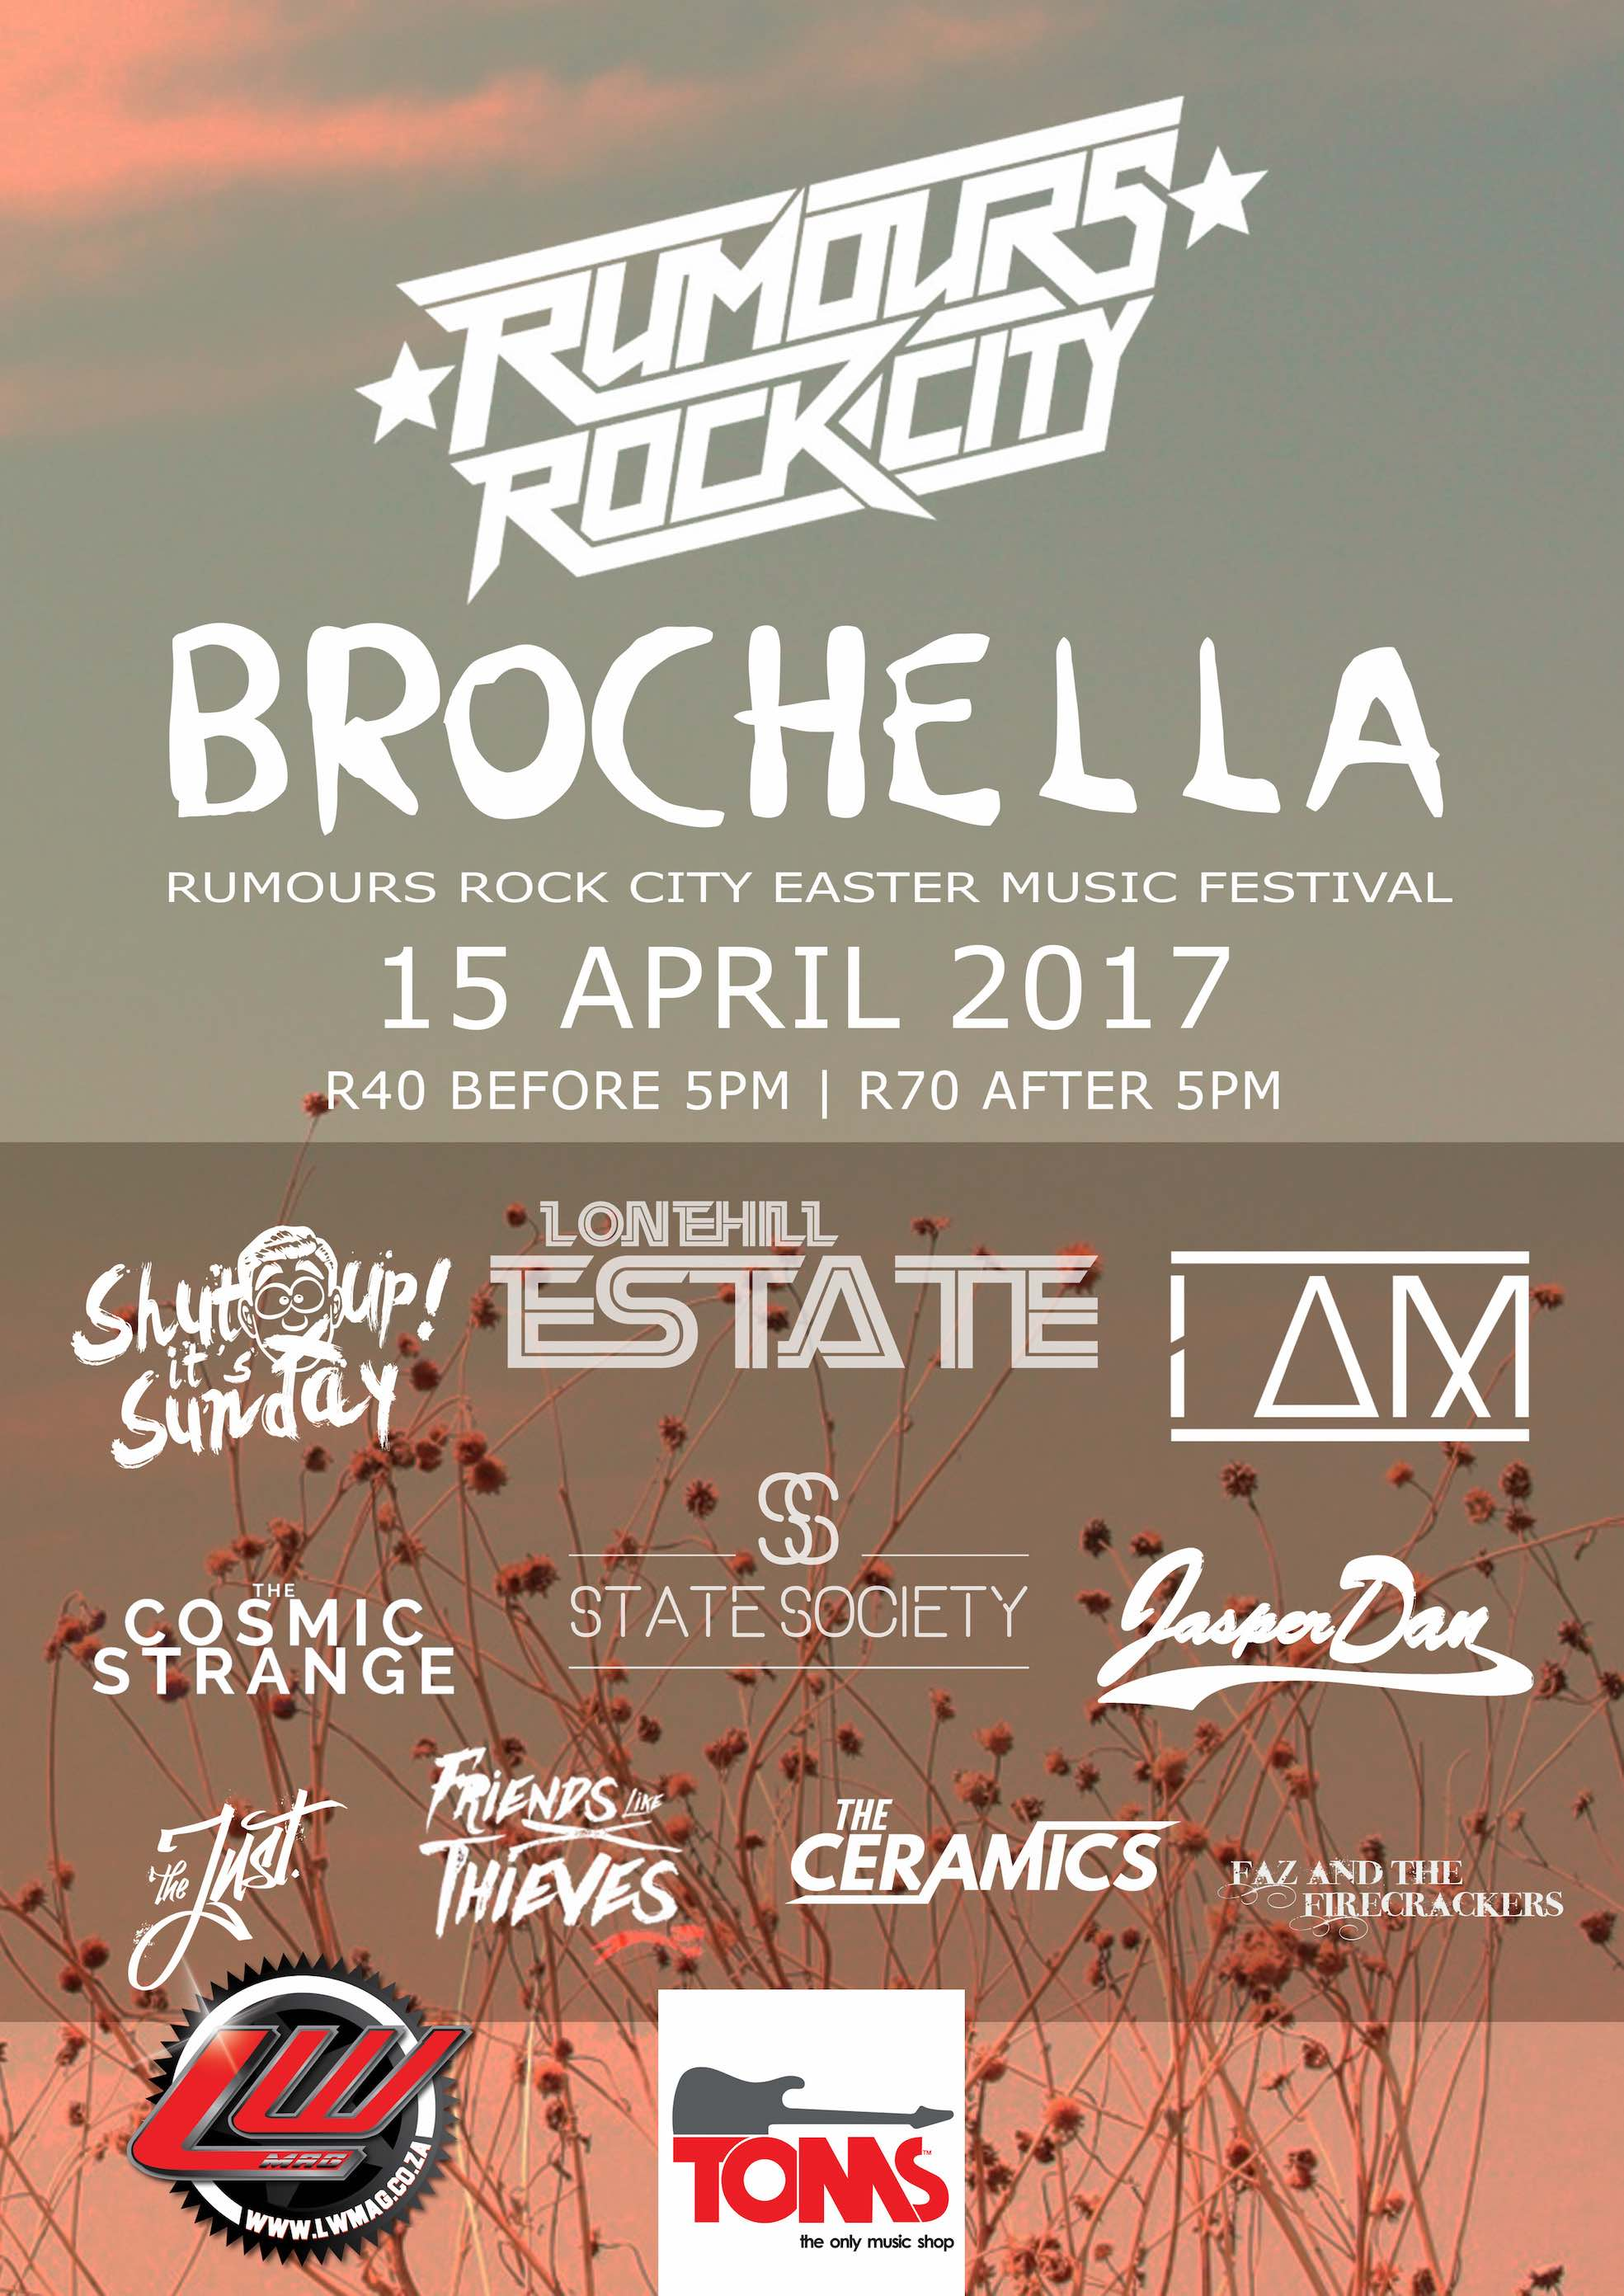 South African Music acts performing at the first annual Brochella Festival at Rumours Rock City